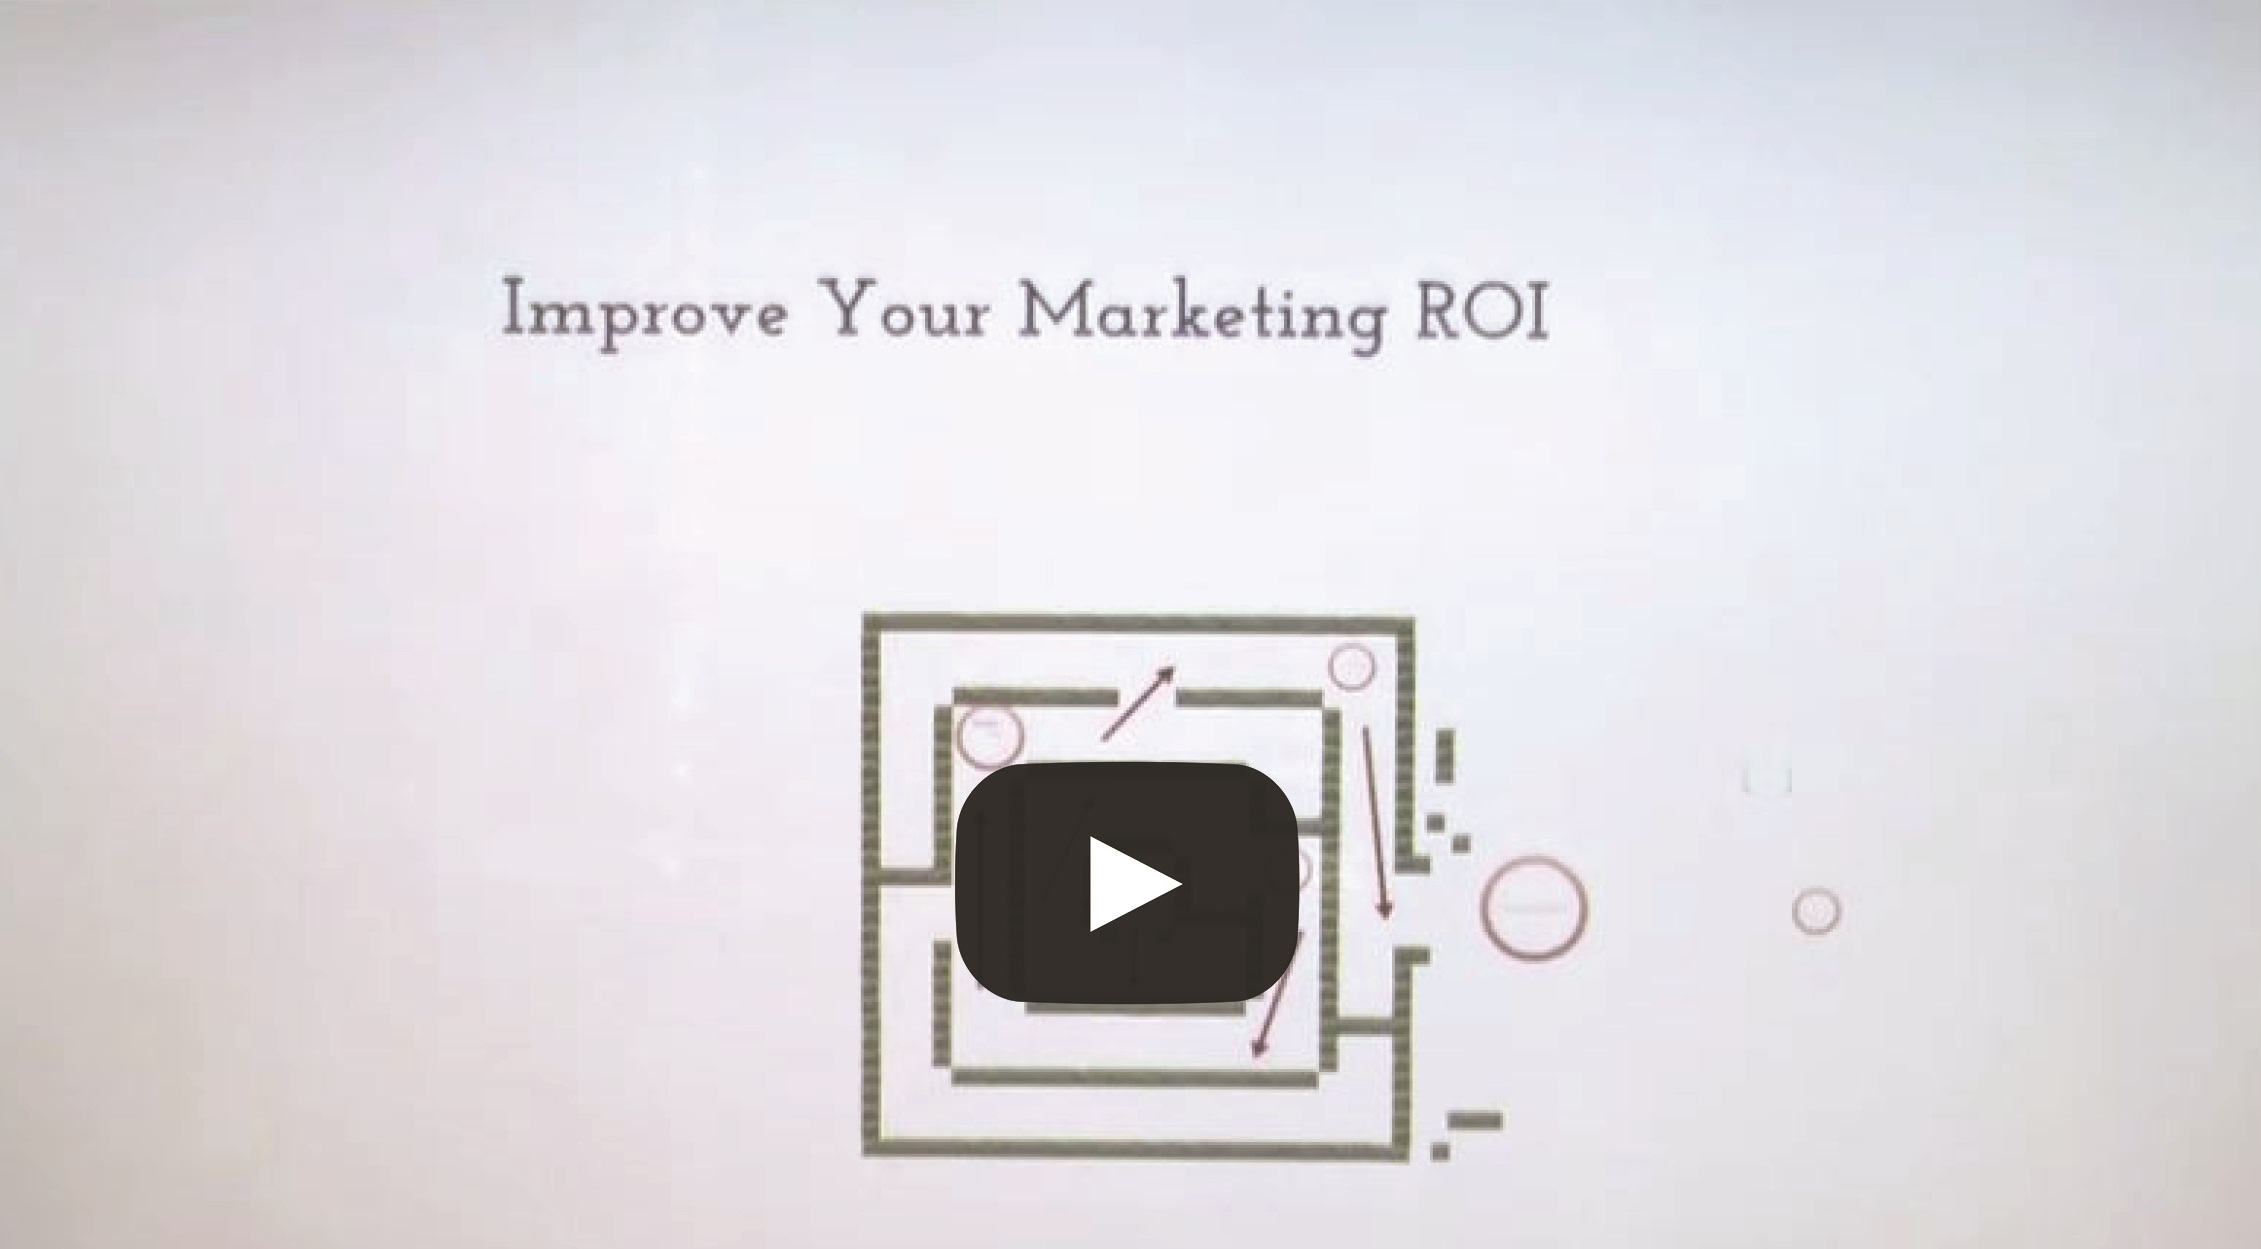 Improving Your Marketing ROI